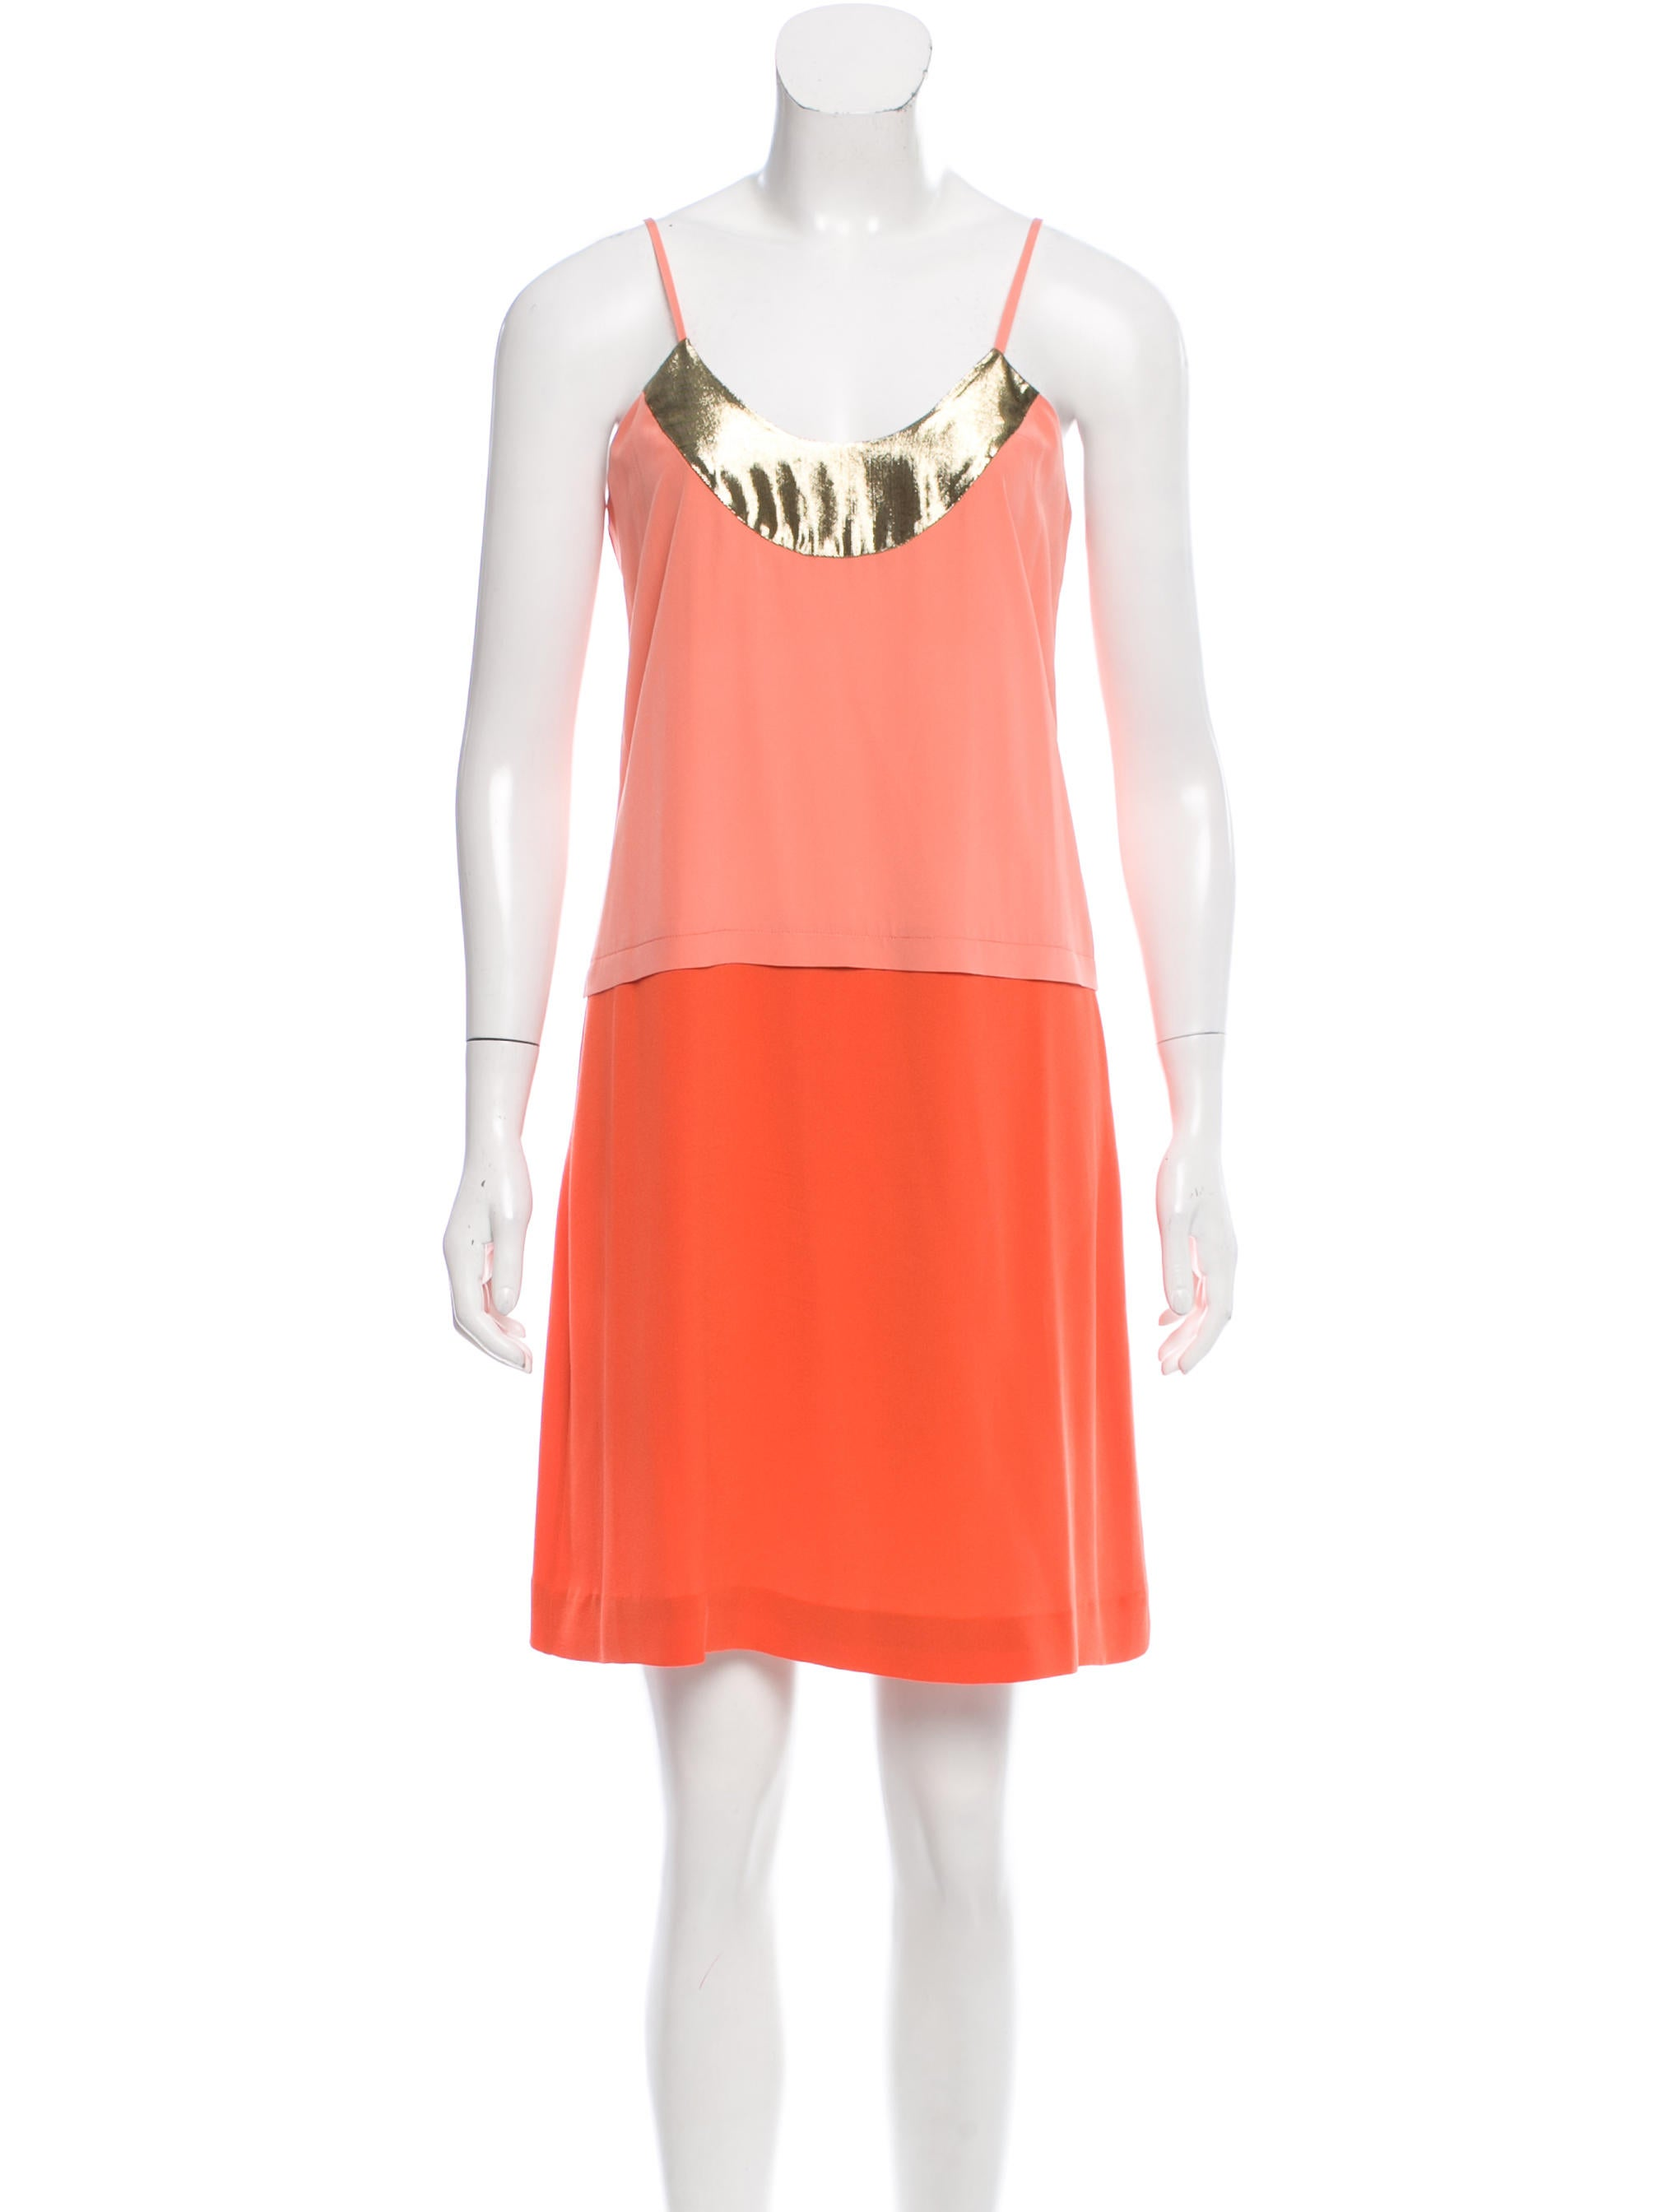 Diane von furstenberg silk aalisha dress clothing for Diane von furstenberg clothes